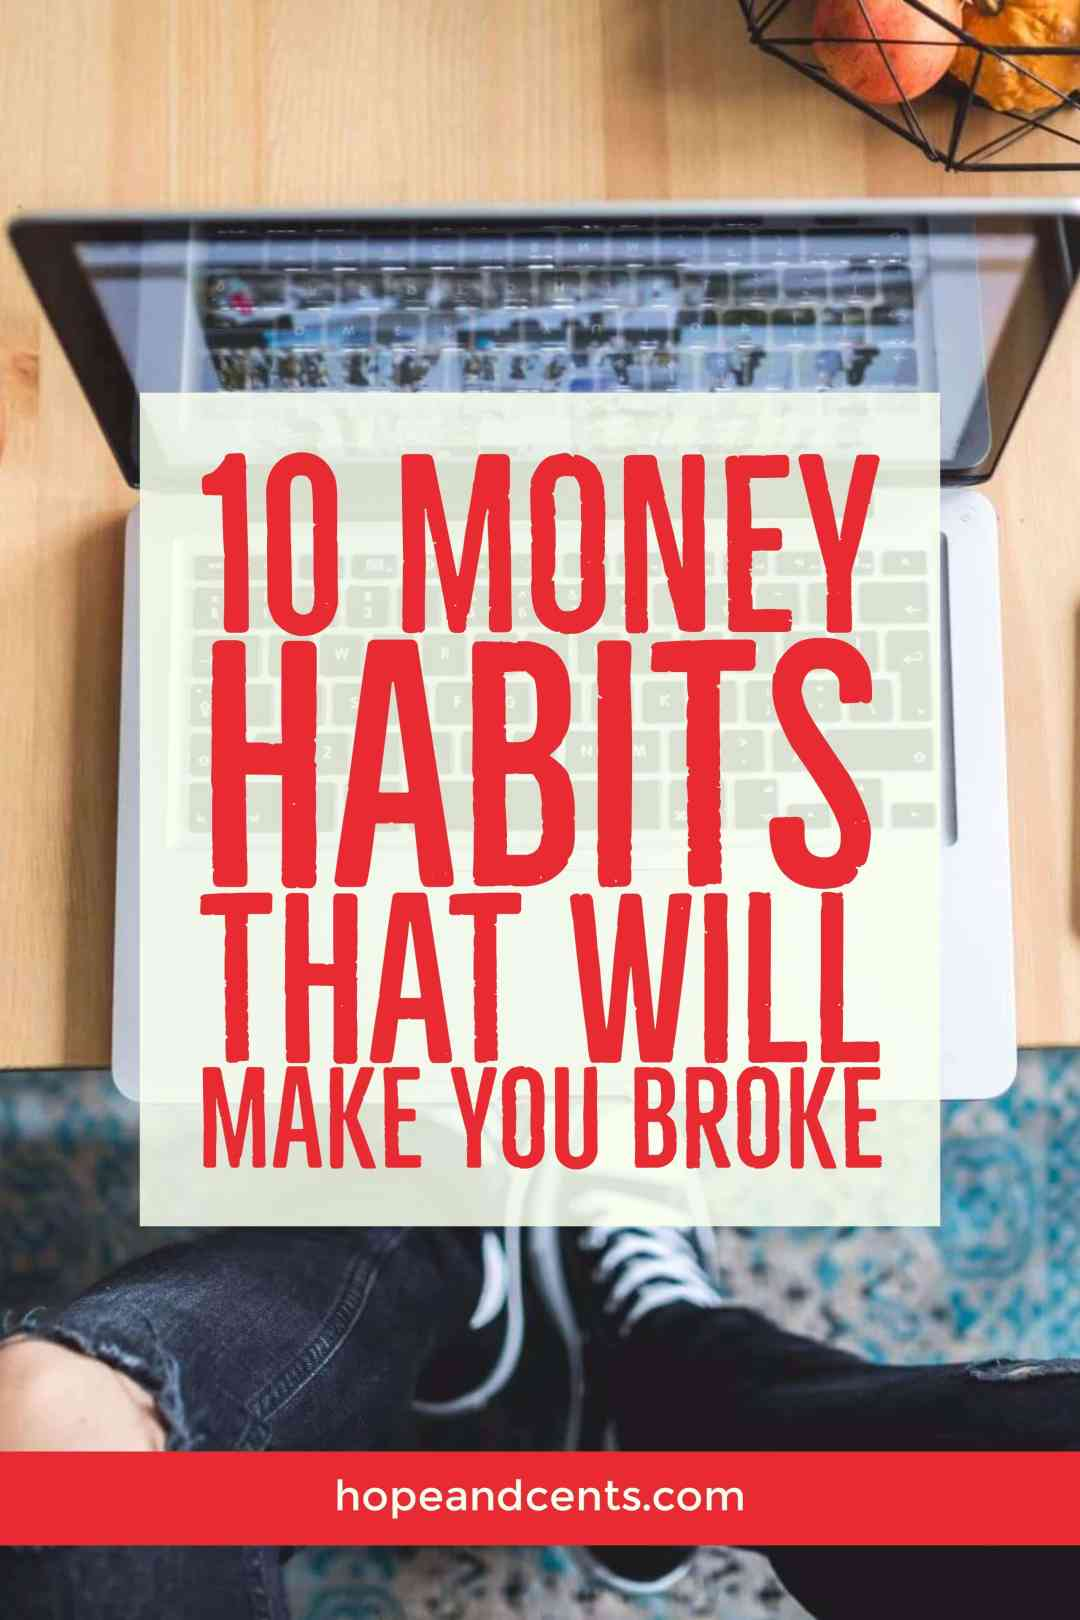 When it comes to finances, your money habits have a significant impact on whether you're heading for financial success or destined to be broke.